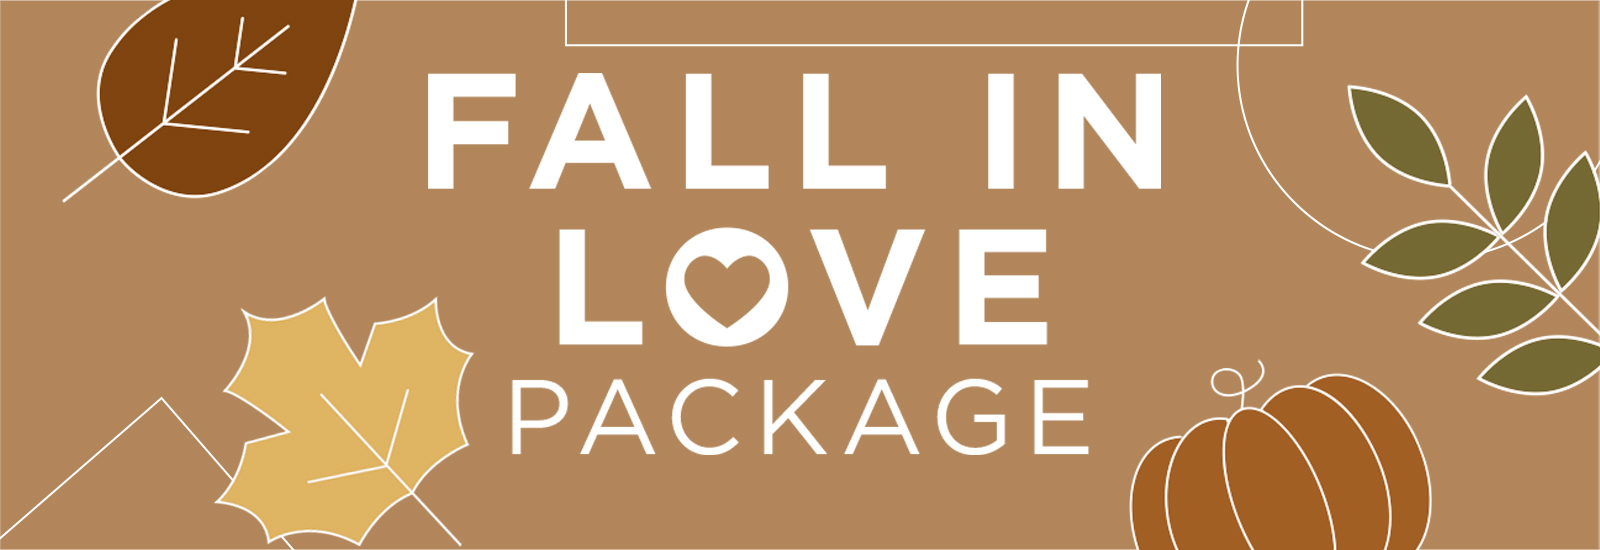 Fall in Love Package